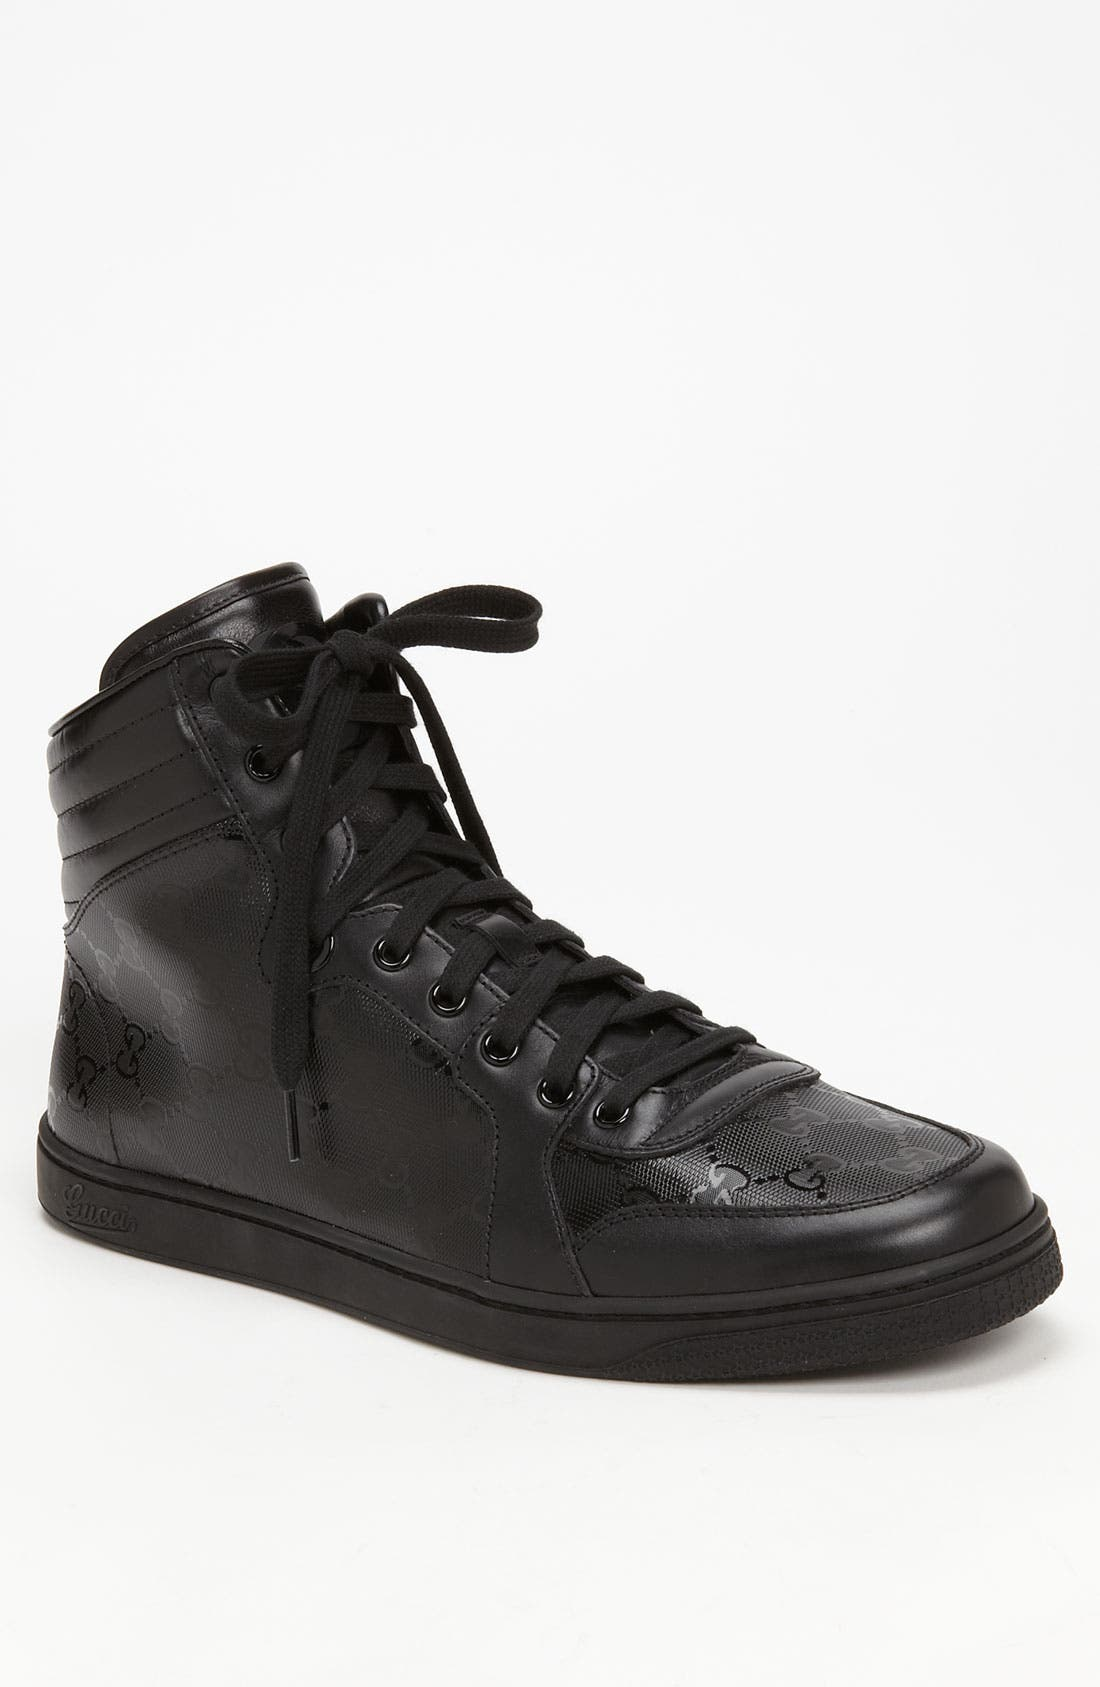 Alternate Image 1 Selected - Gucci 'Coda' High Top Sneaker